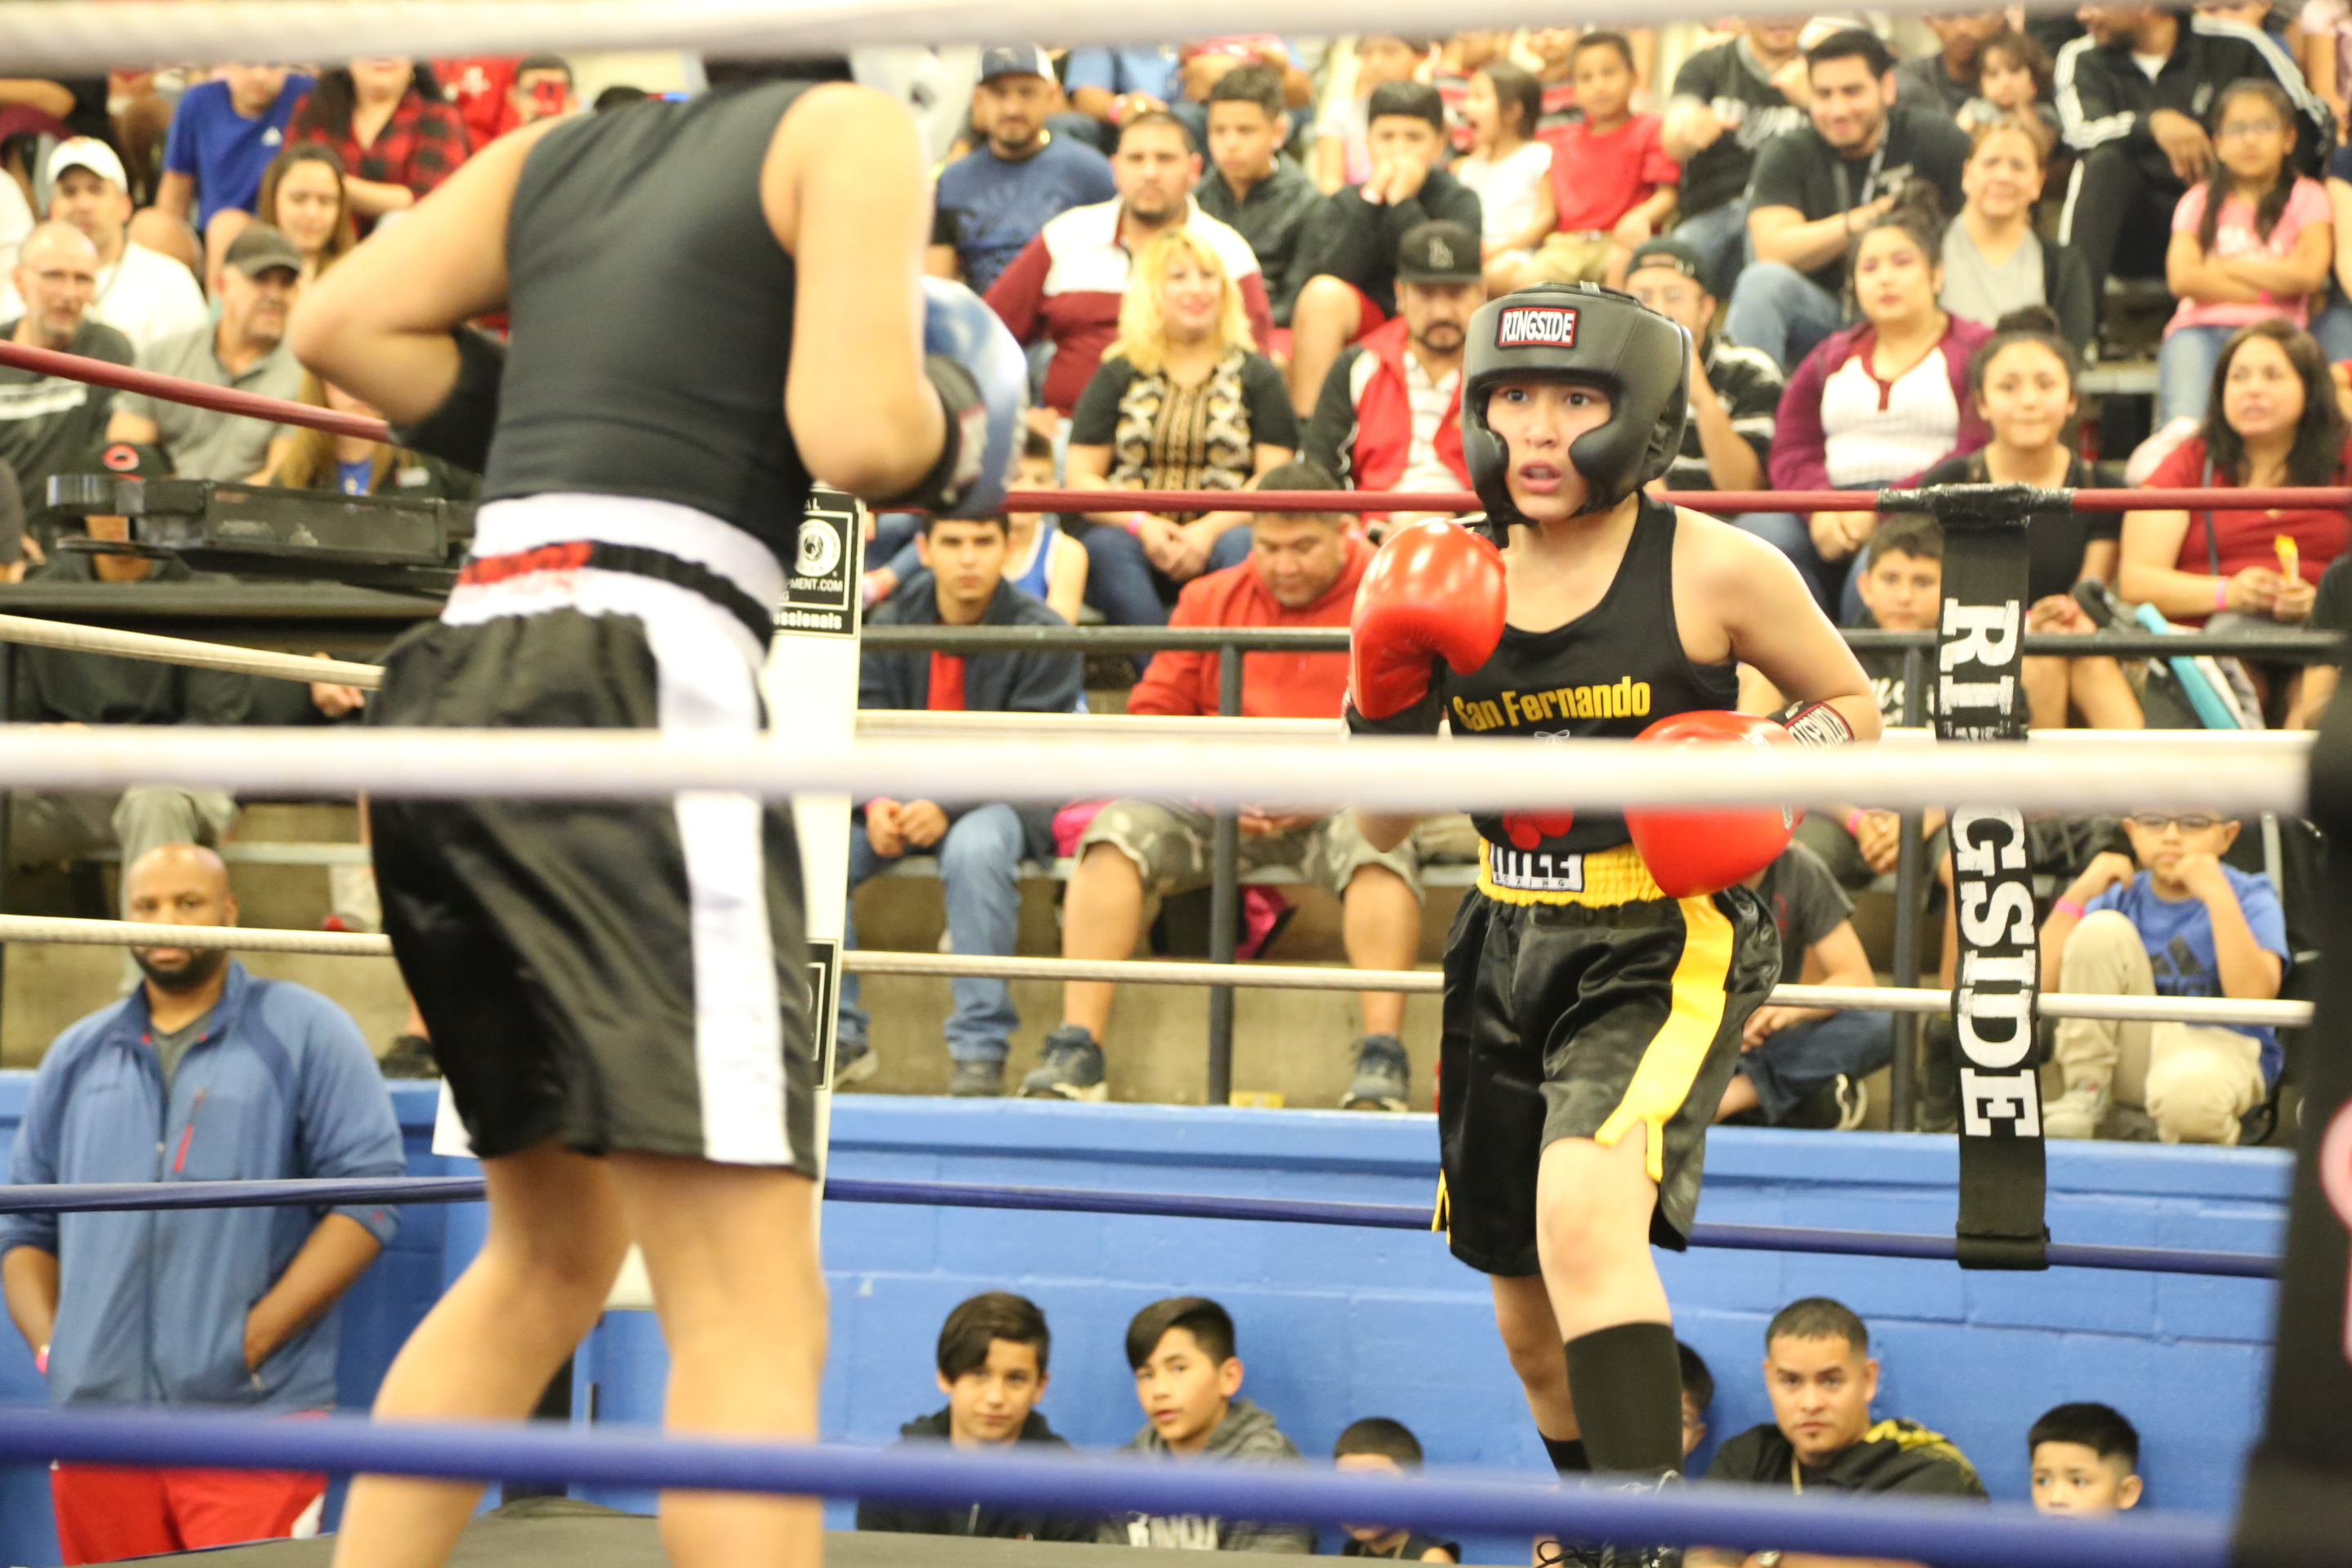 Youth boxing match